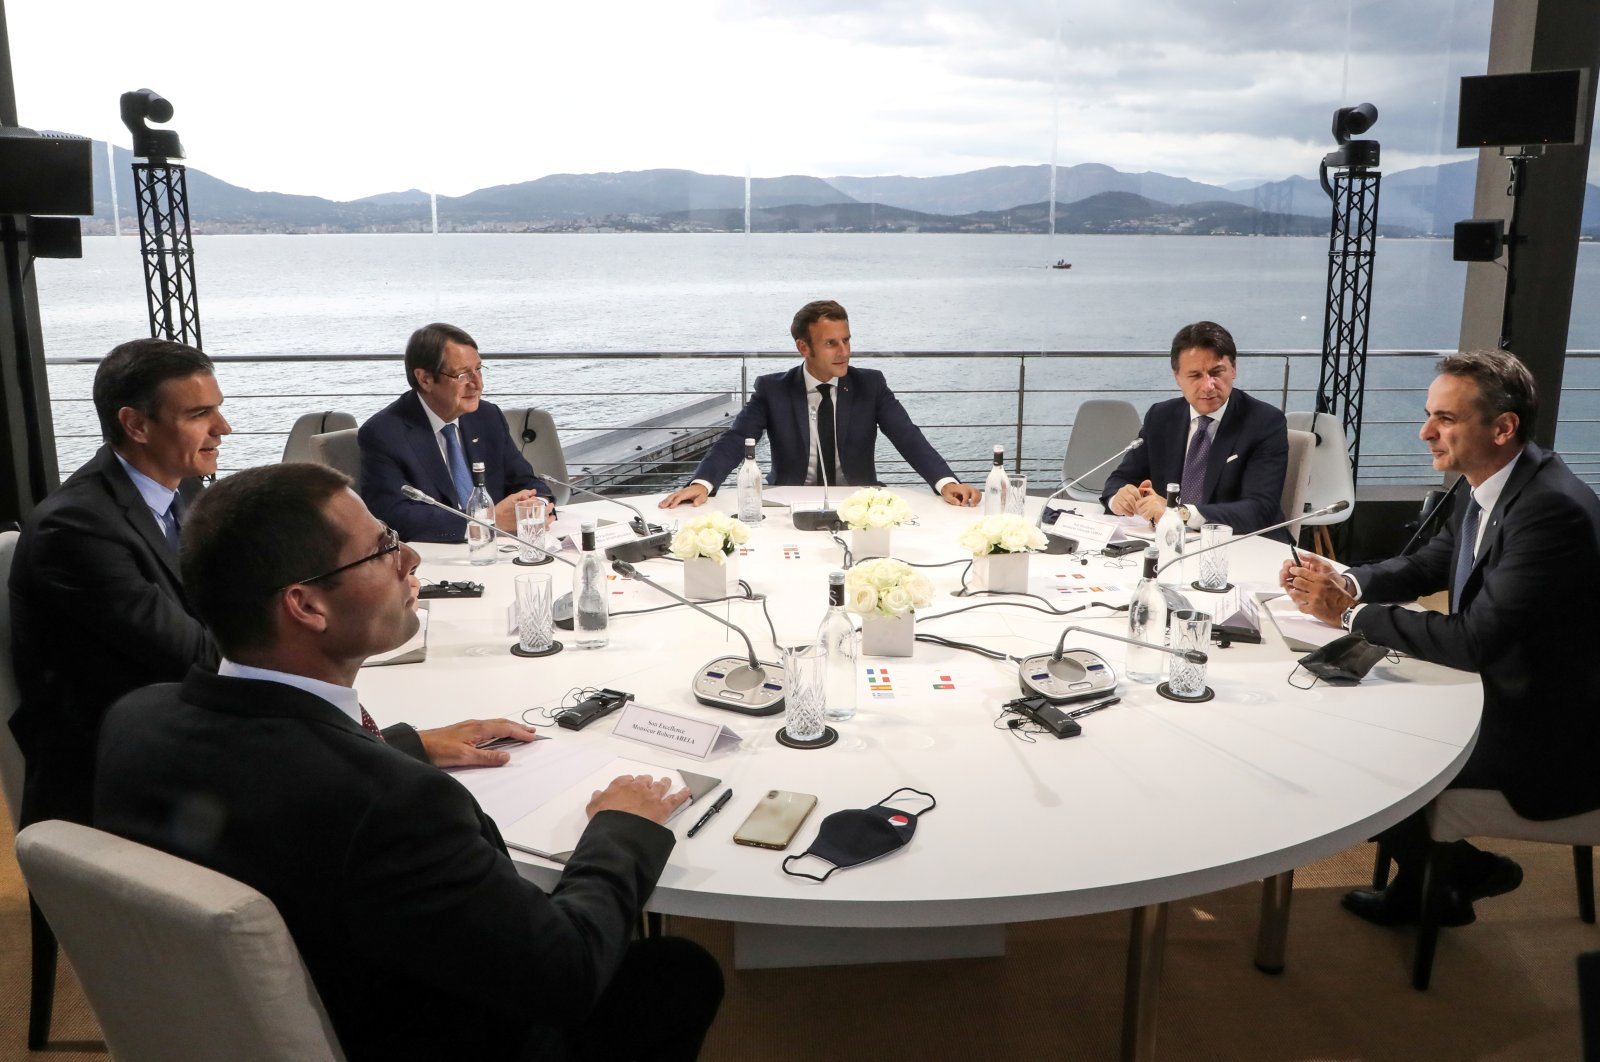 The plenary session of the EuroMed 7 summit opens with (from L to R) Malta's Prime Minister Robert Abela, Spain's Prime Minister Pedro Sanchez, Greek Cypriot leader Nicos Anastasiades, French President Emmanuel Macron, Italian Prime Minister Giuseppe Conte and Greek Prime Minister Kyriakos Mitsotakis in attendance, in Porticcio, Corsica, France, Sept. 10, 2020. (Reuters Photo)